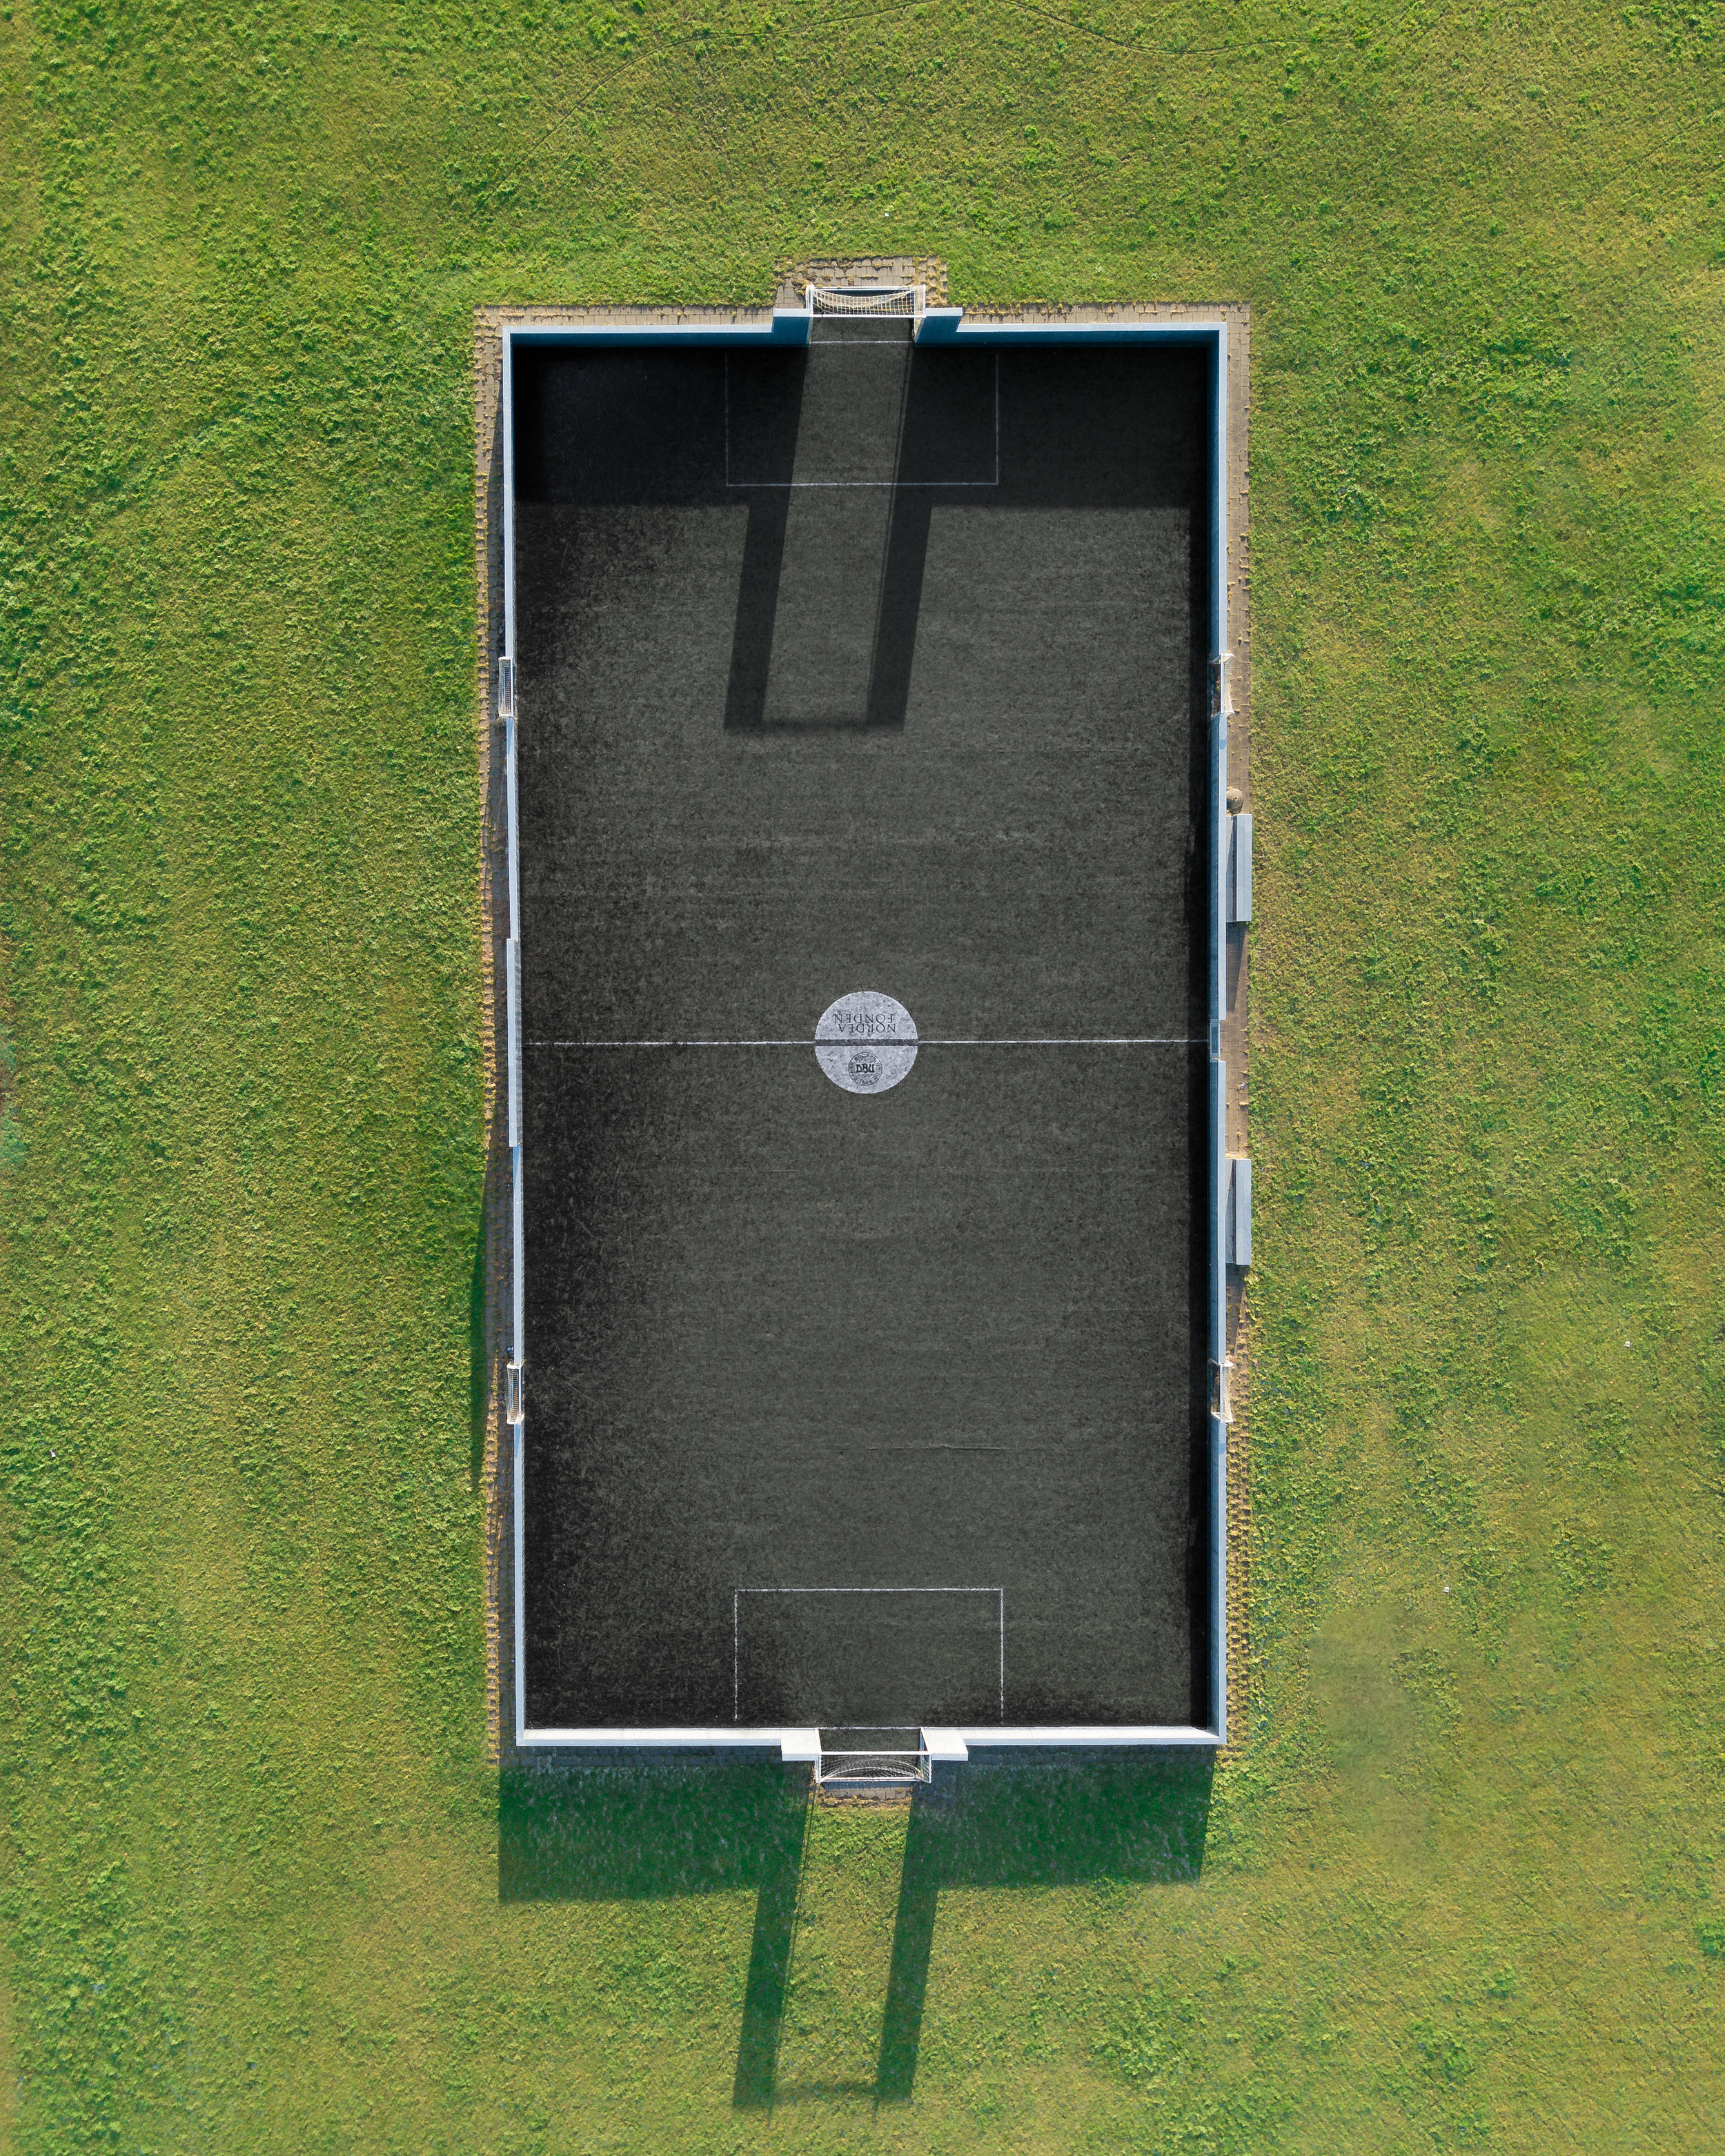 A local football field. I'm not too keen on football, so I've no idea why you wouldn't just play on the grass.